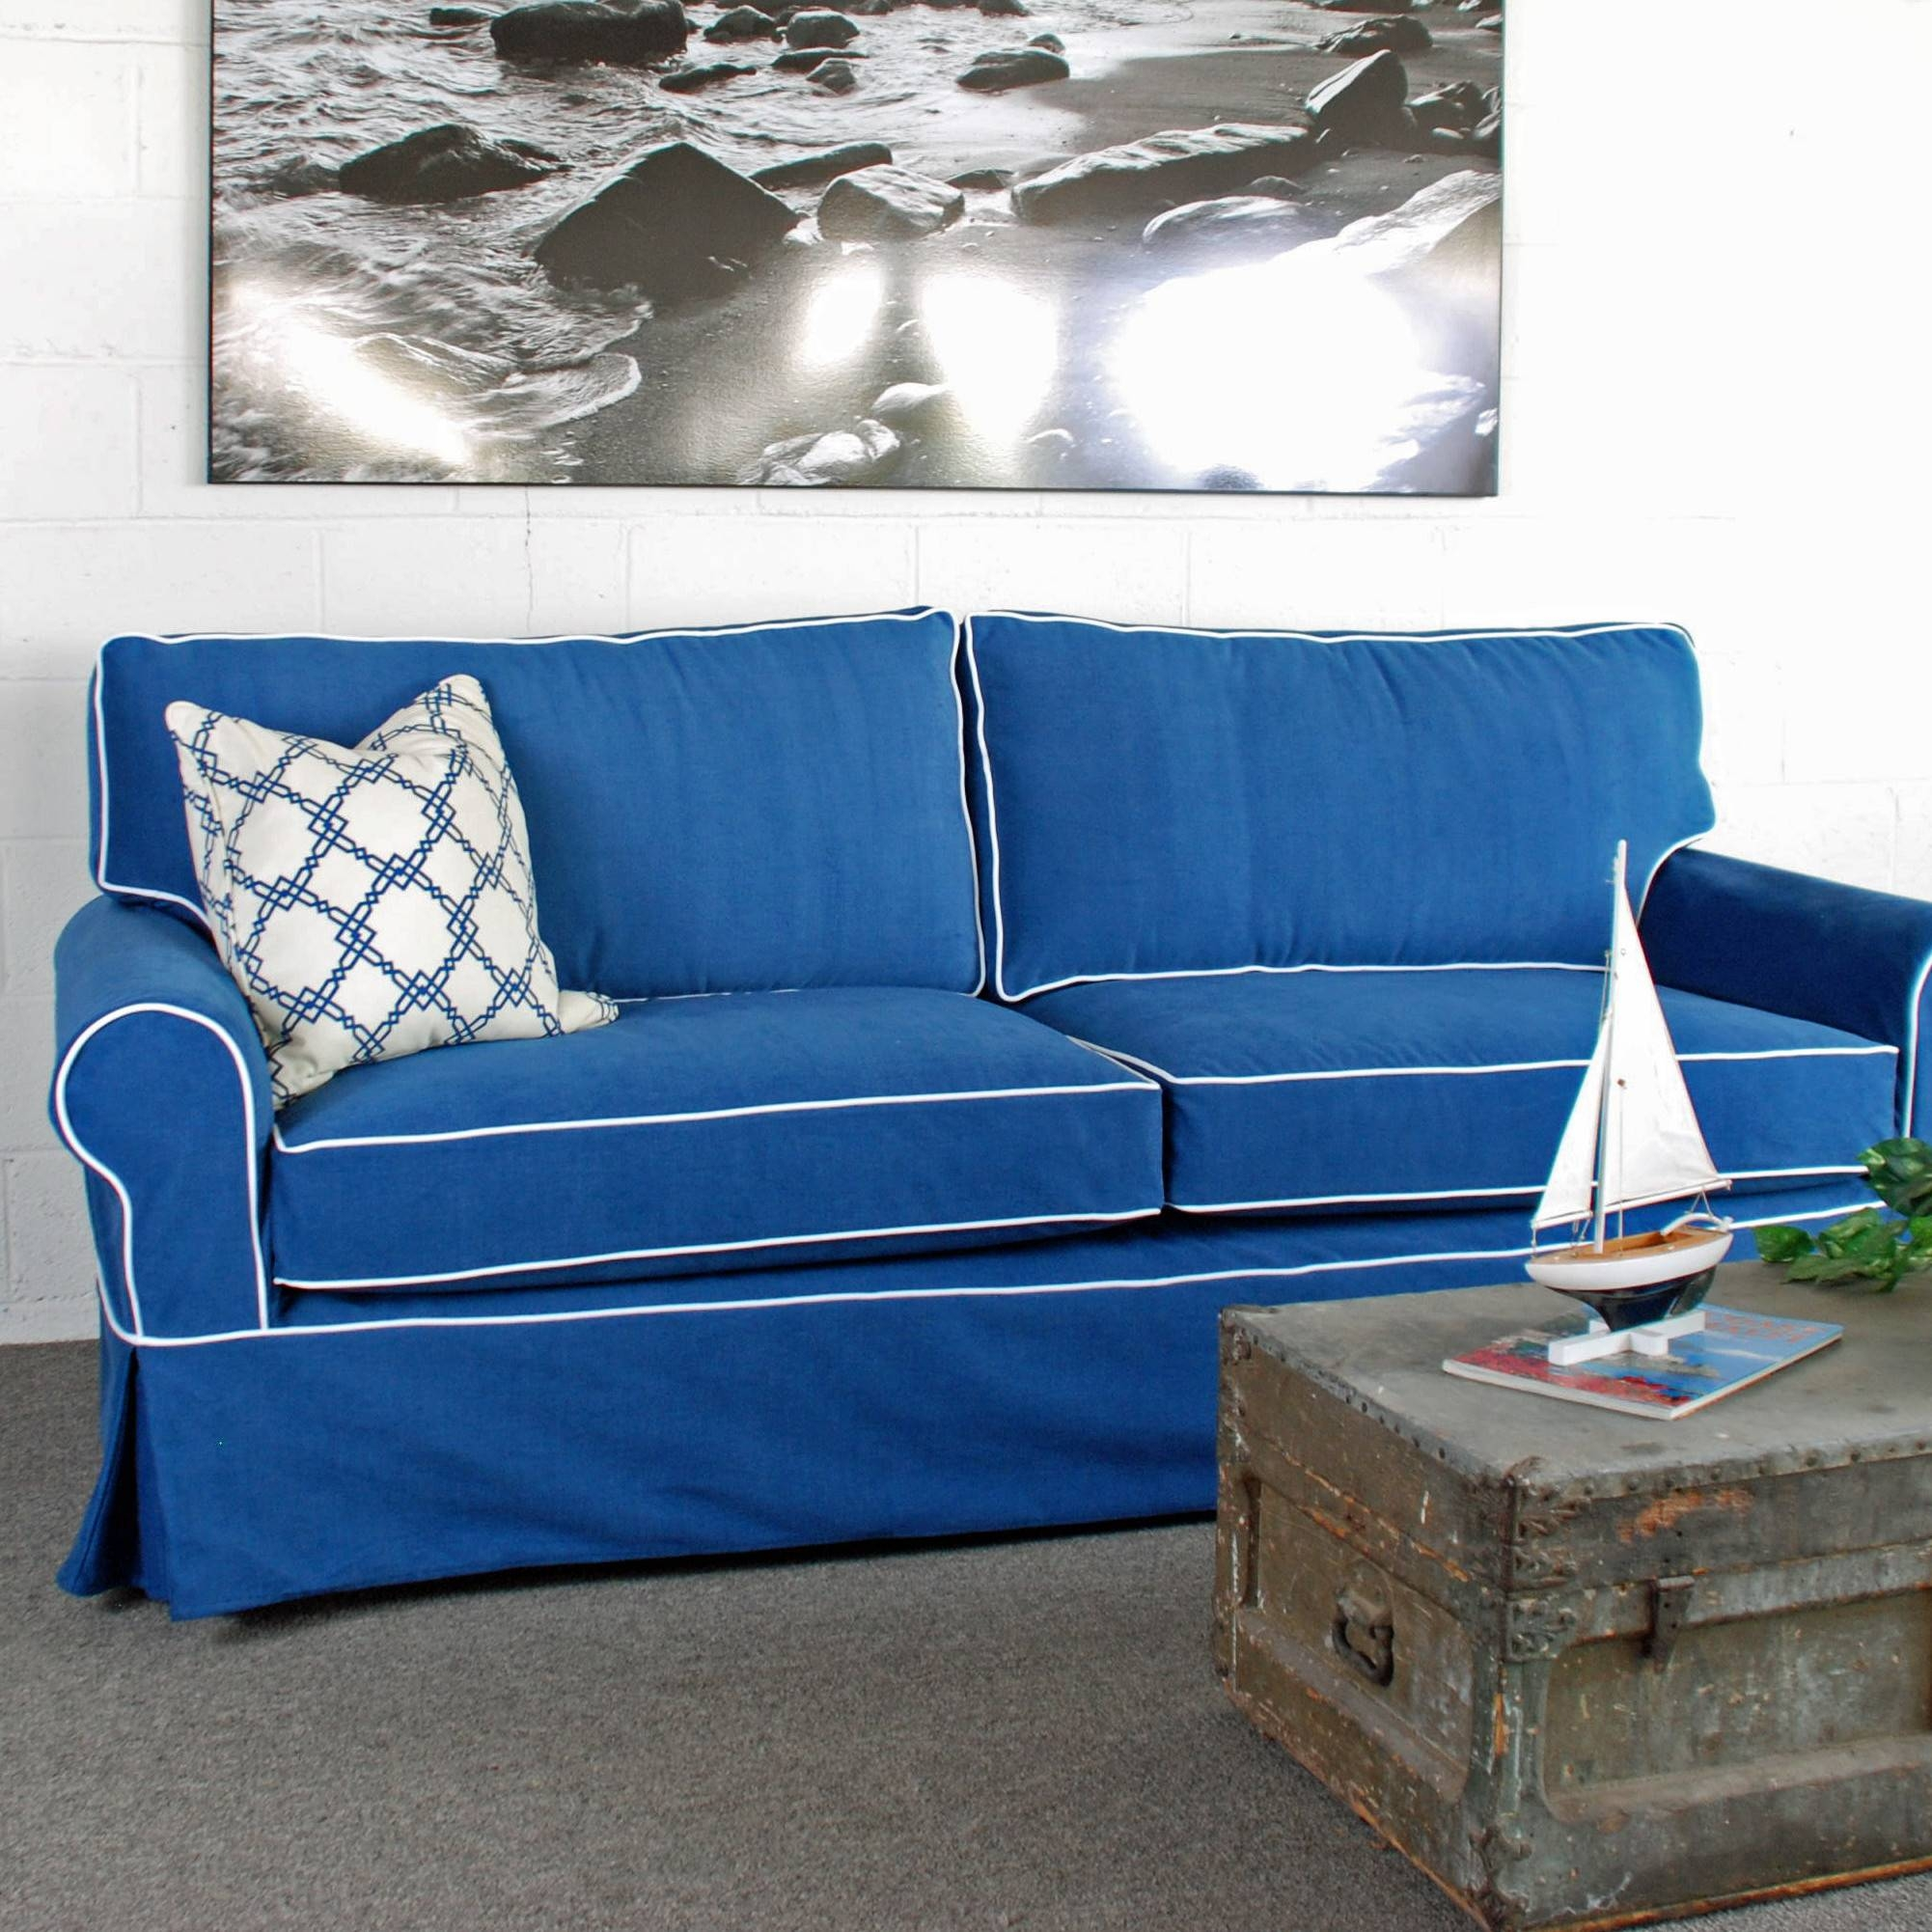 jcpenney in storage slipcover ideas crawford blue sectional l your albie and denim slipcovers ektorp best ikea living room lefthand crate left loveseat facing replacement corner sofa ellyson furniture cindy haze madecom barrel update with chaise reclining hand